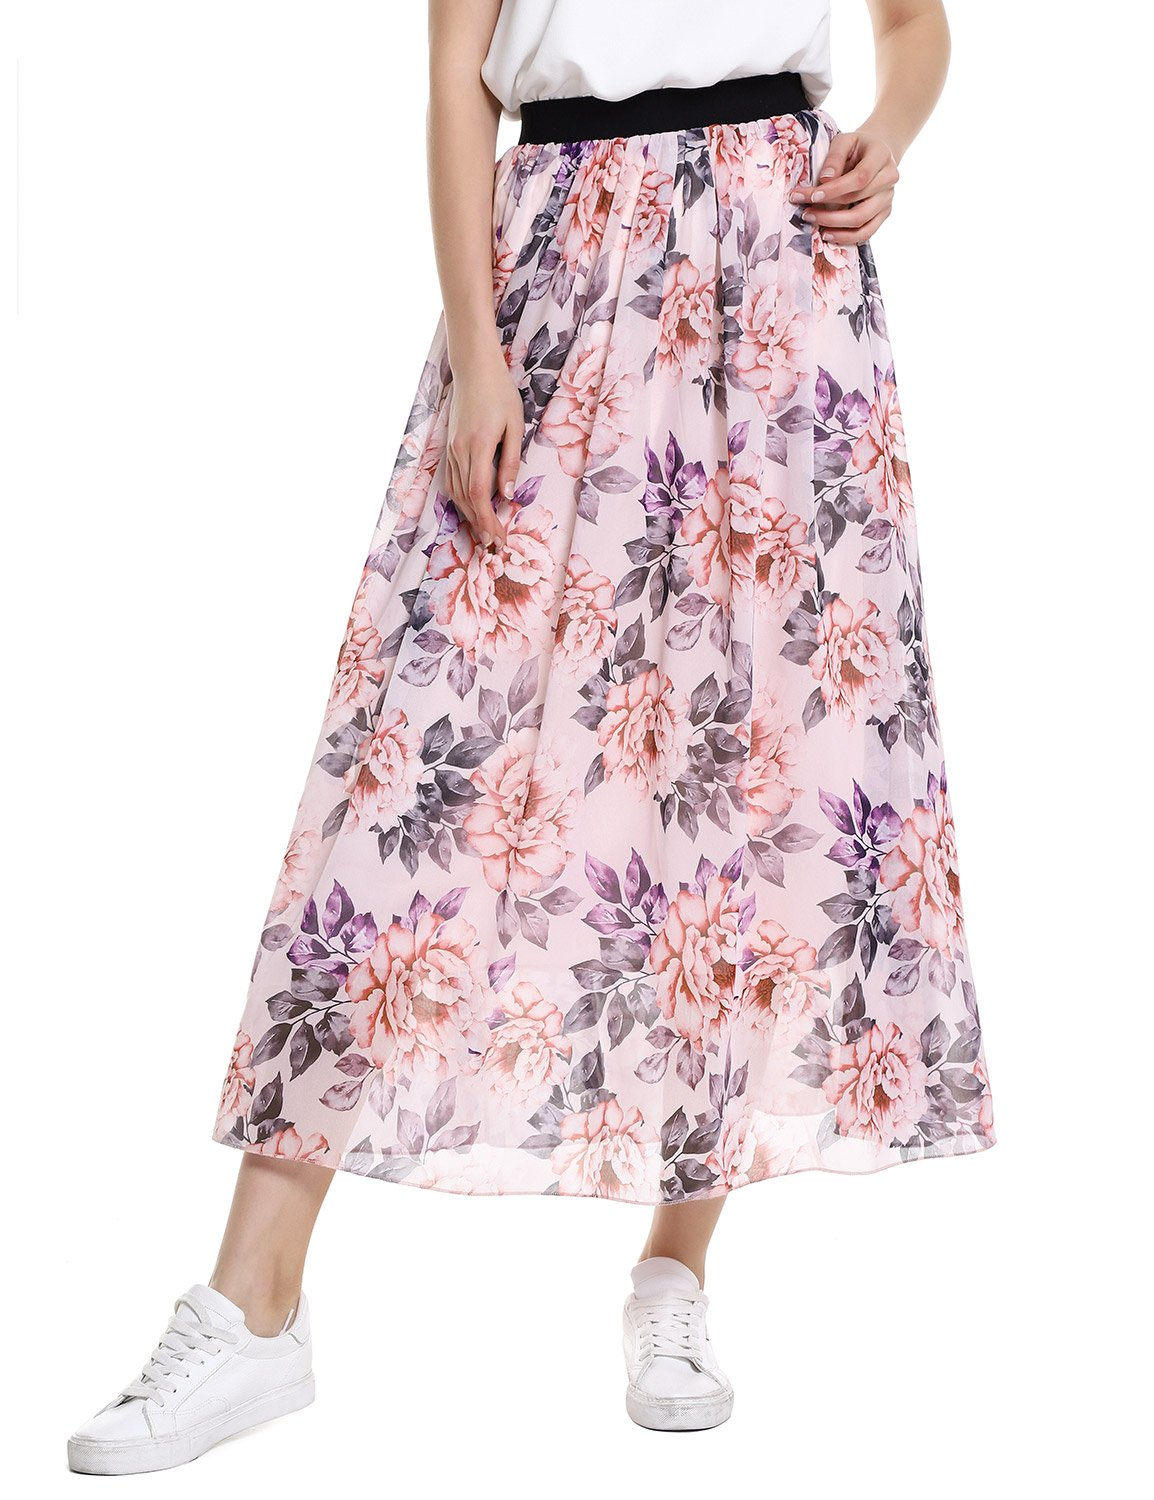 ZANSTYLE Chiffon Maxi Skirt Casual Floral Elastic Waist Tulle Layer Ankle Length Beach Skirt